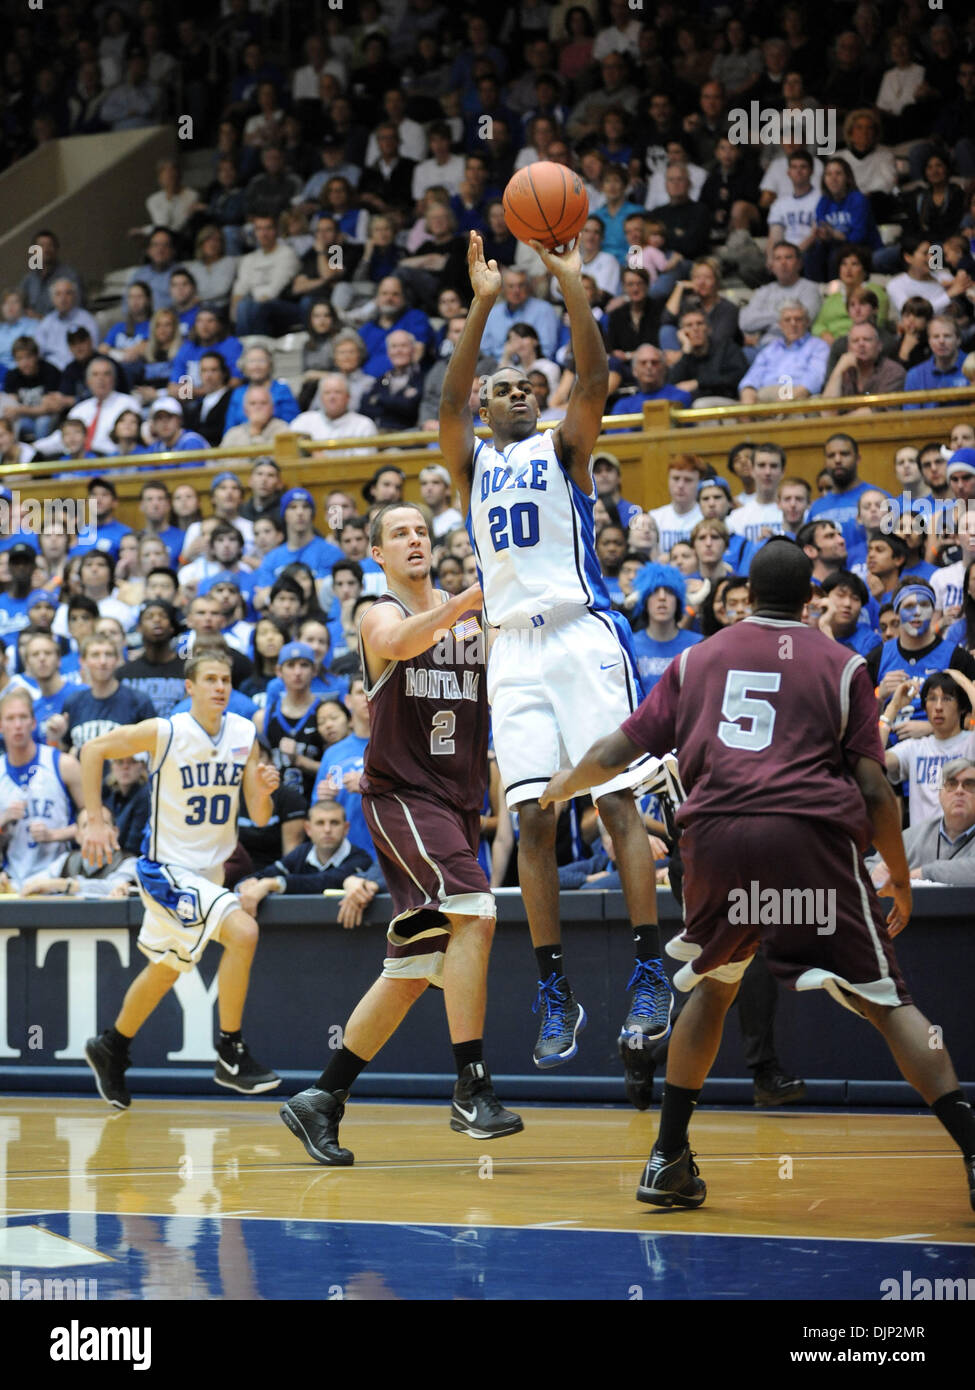 Nov 23, 2008 - Durham, North Carolina, USA - NCAA Basketball: Duke Bluedevils (20) ELLIOT WILLIAMS takes a jump shot as the Duke University Bluedevils defeat the University of Montana Grizzlies with a final score of 78-58 as they played mens college basketball at Cameron Indoor Stadium located in Durham.   (Credit Image: © Jason Moore/ZUMA Press) - Stock Image